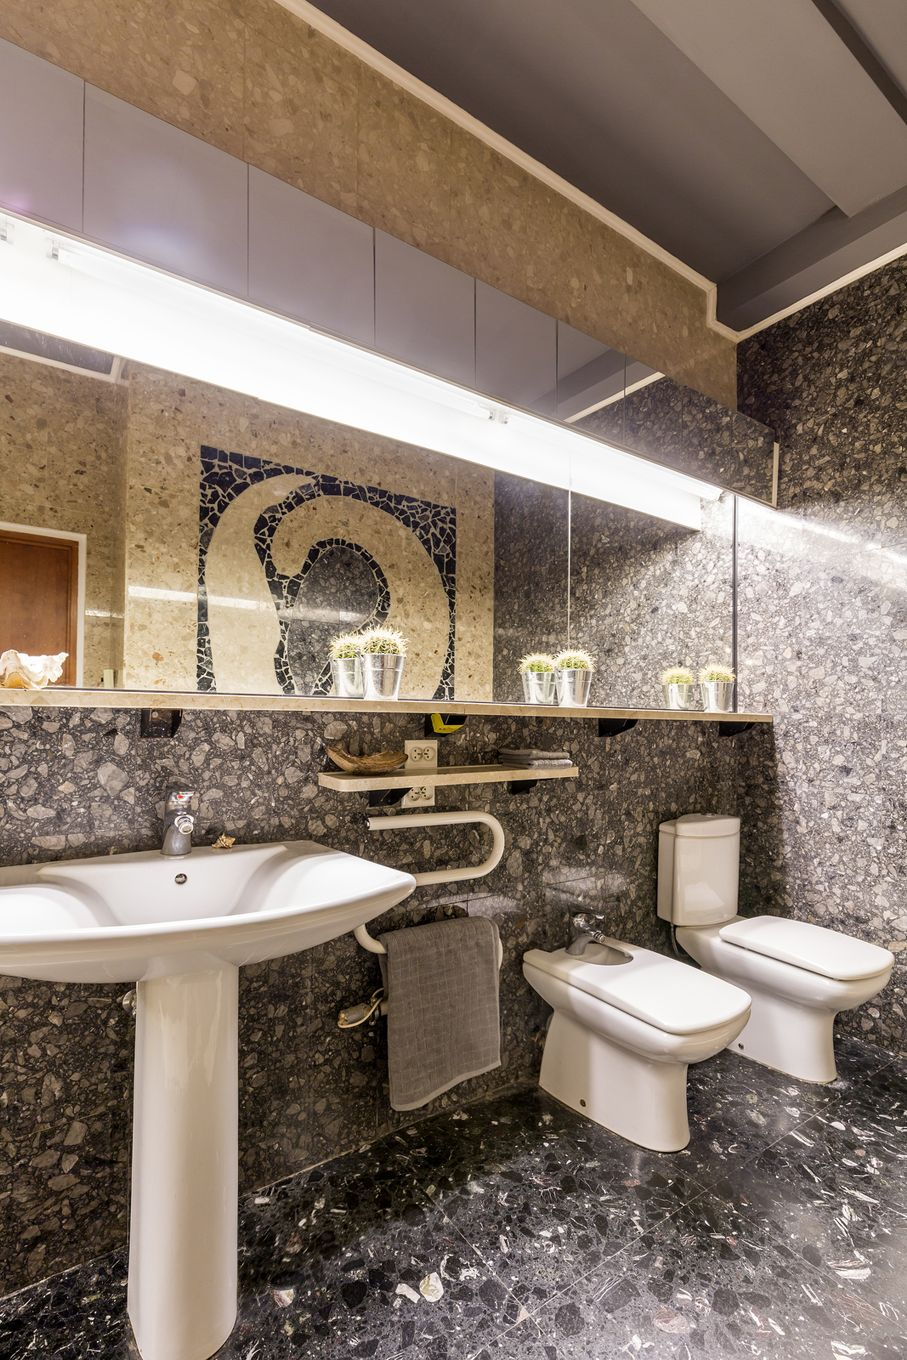 Bathroom interior with gold and grey colous with sink toilet urinalmirror mosaic on the wall and backlight